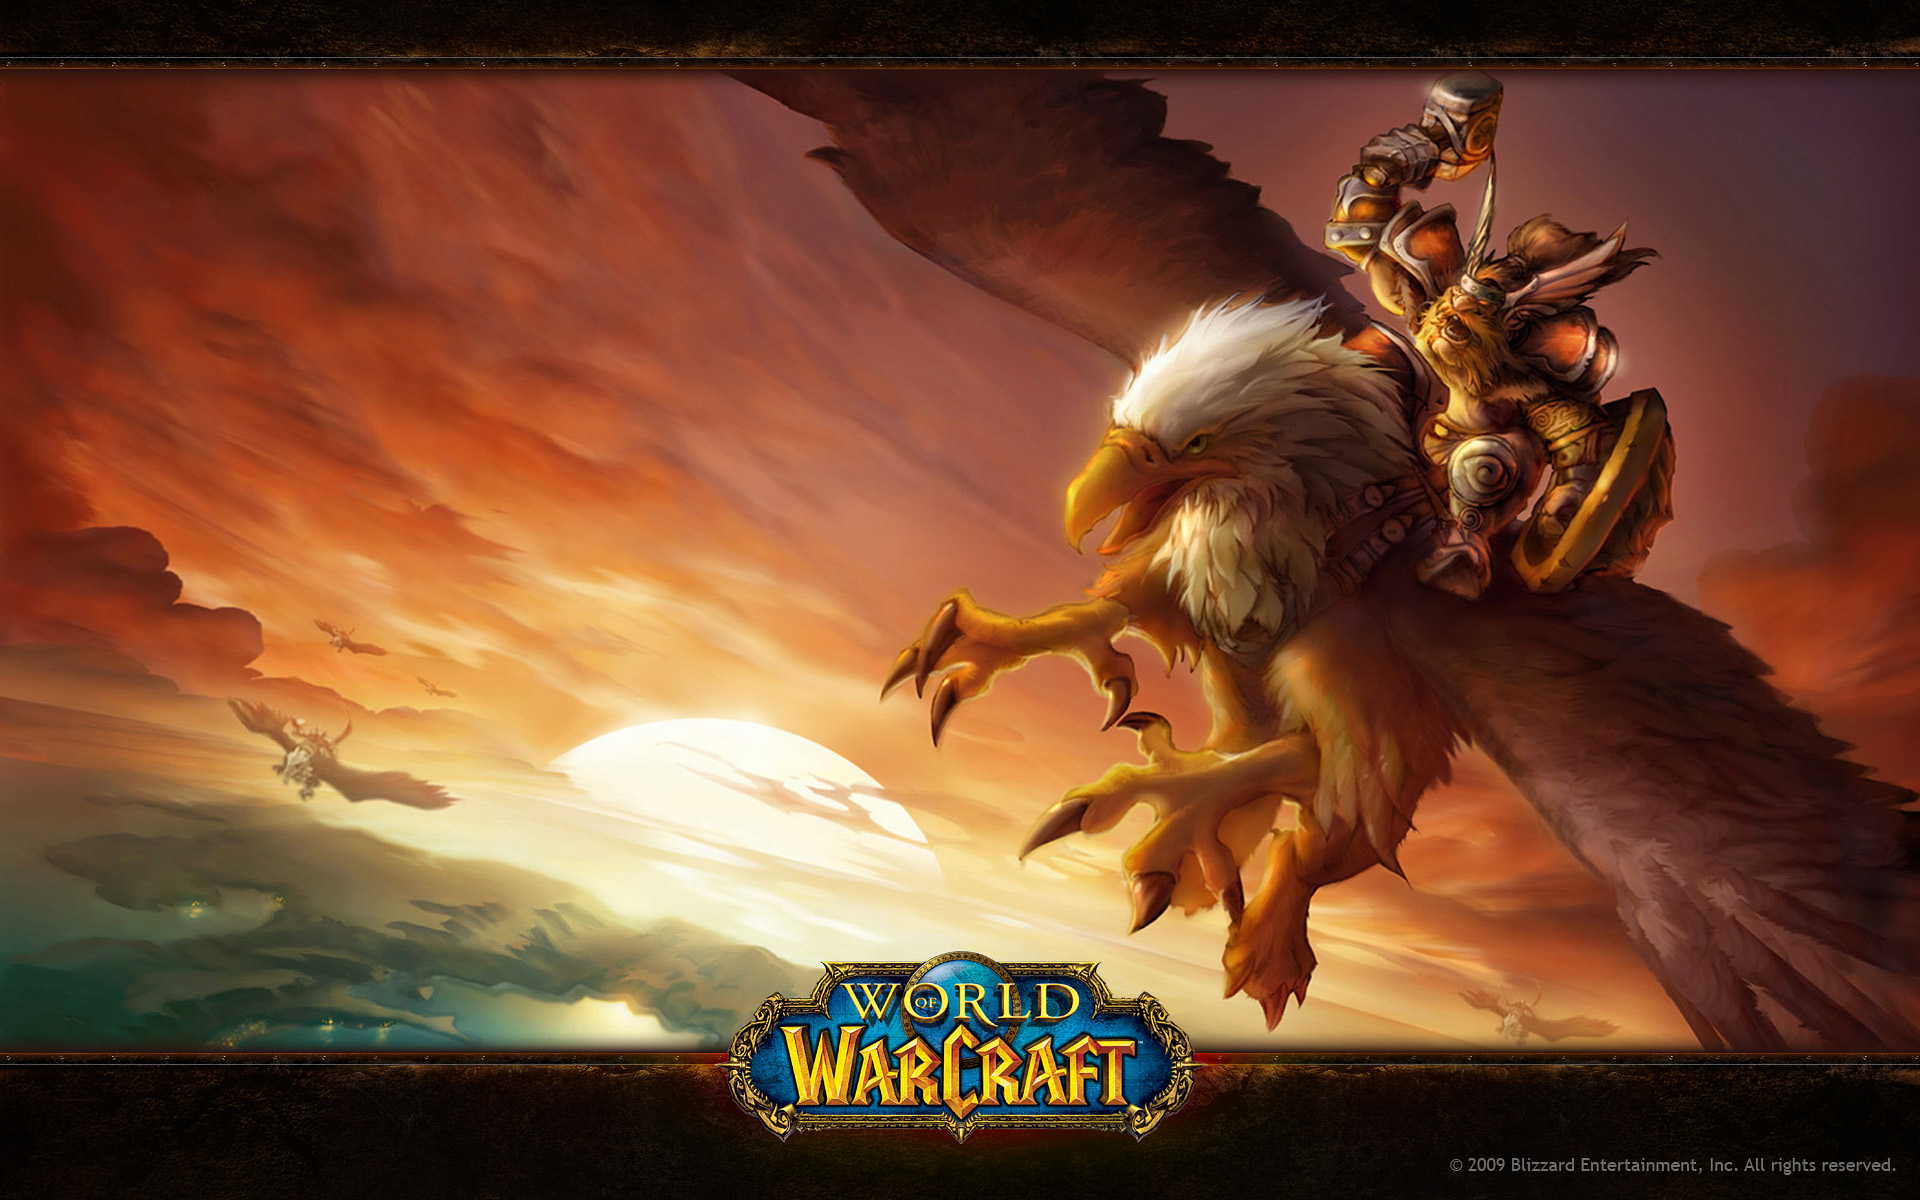 world of warcraft images